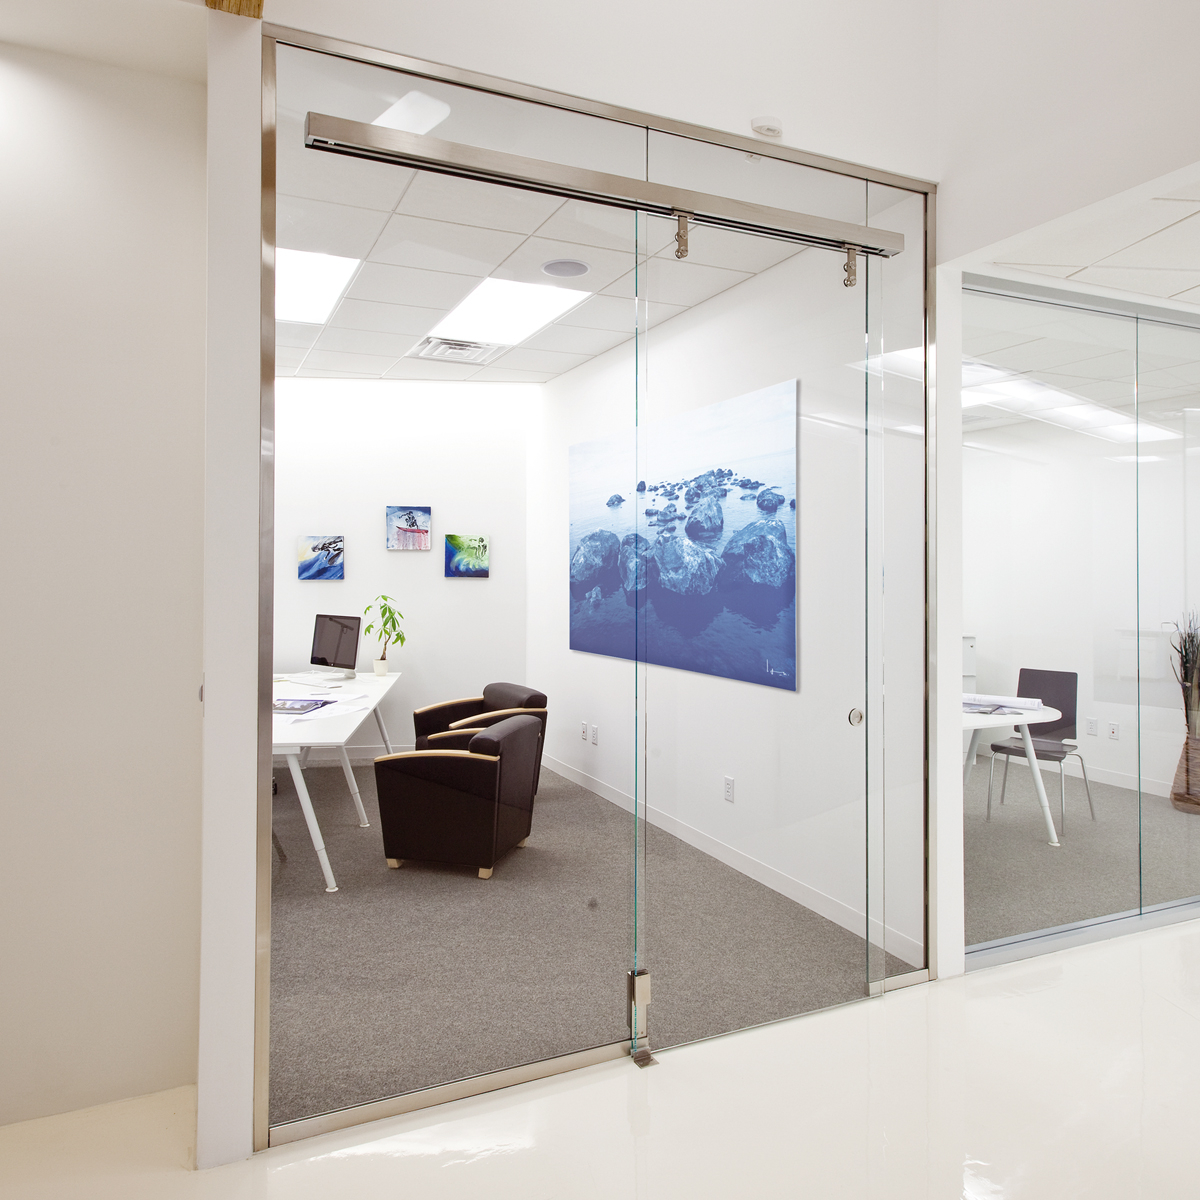 Dorma Interior Glass Wall Systems Transparency And Versatility